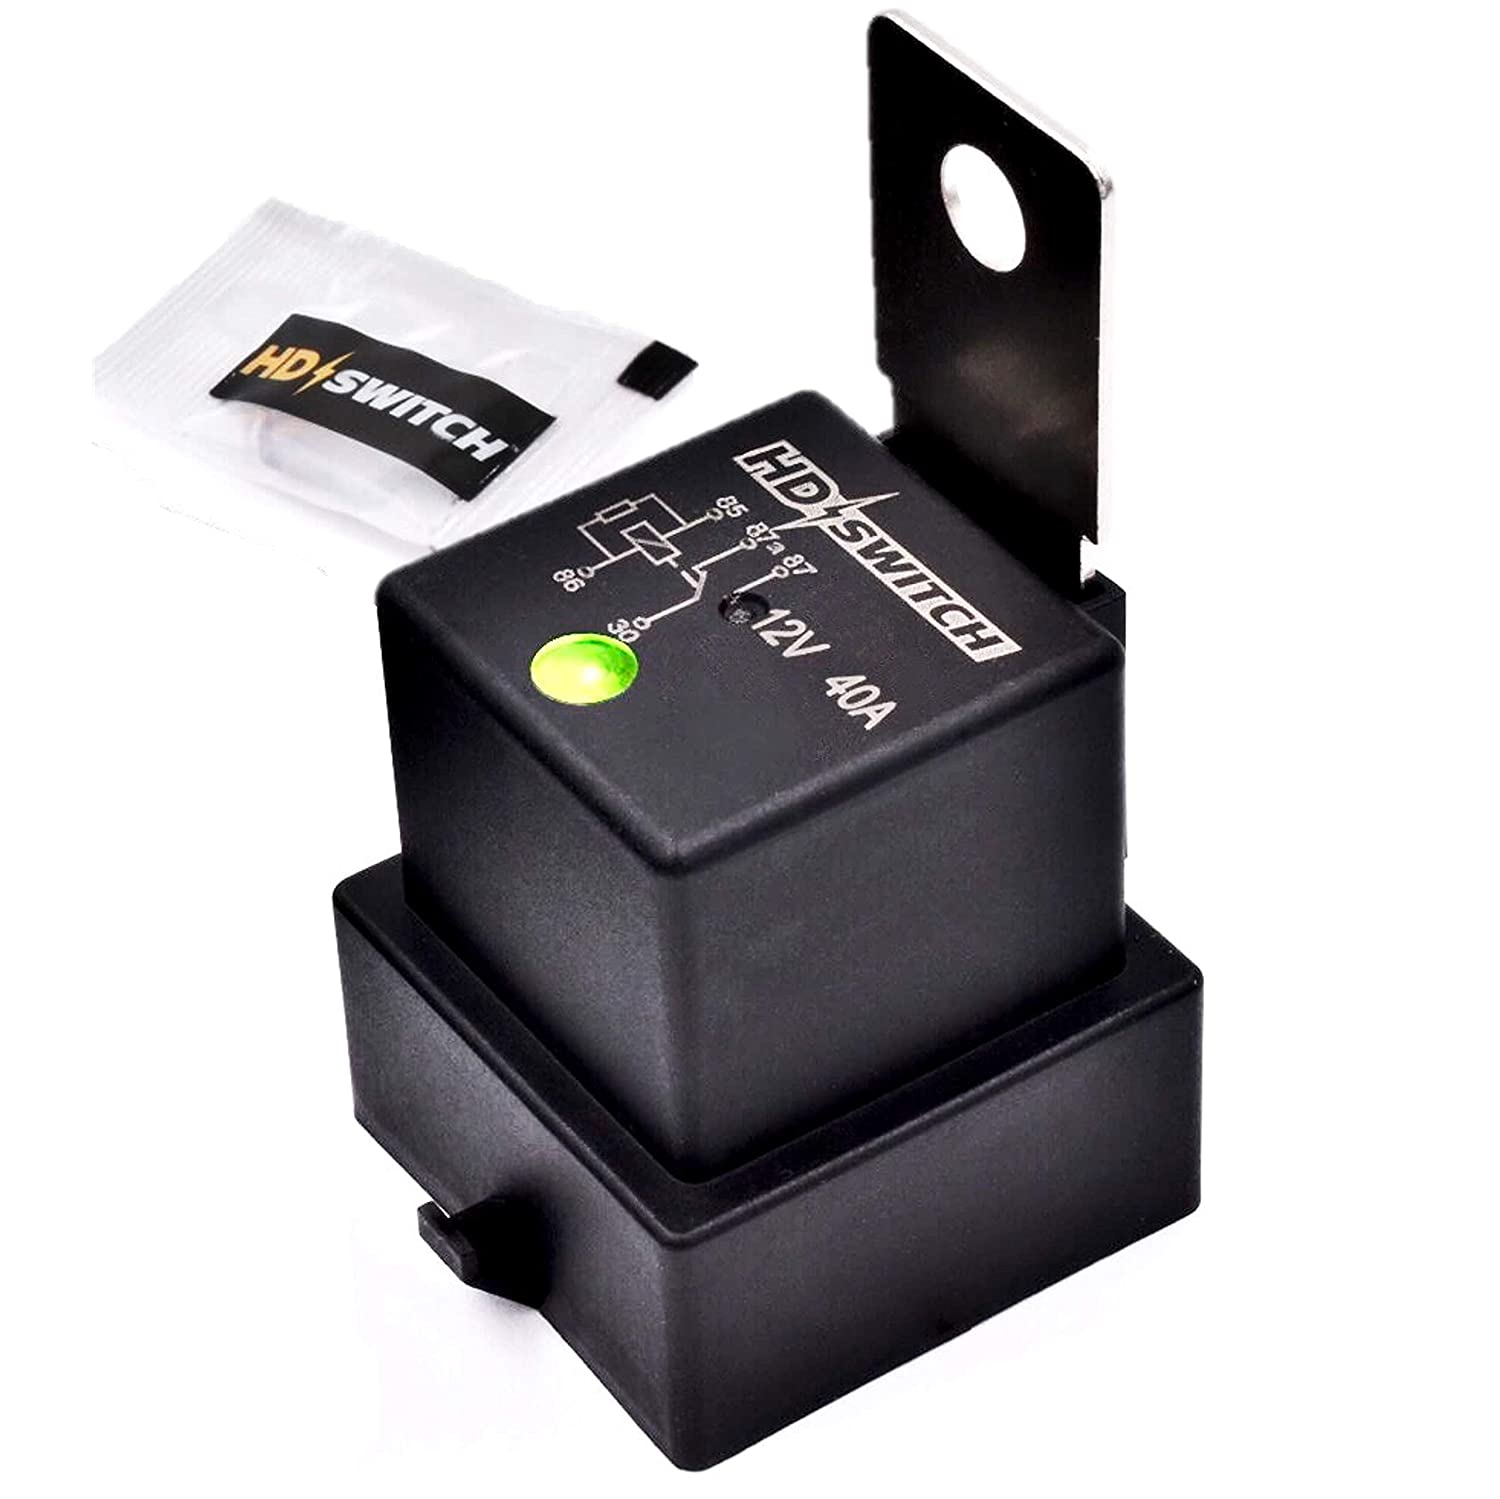 Max 60% OFF HD Switch Waterproof Relay w 4RD-96 Replaces Indicator LED Hella Cheap mail order sales